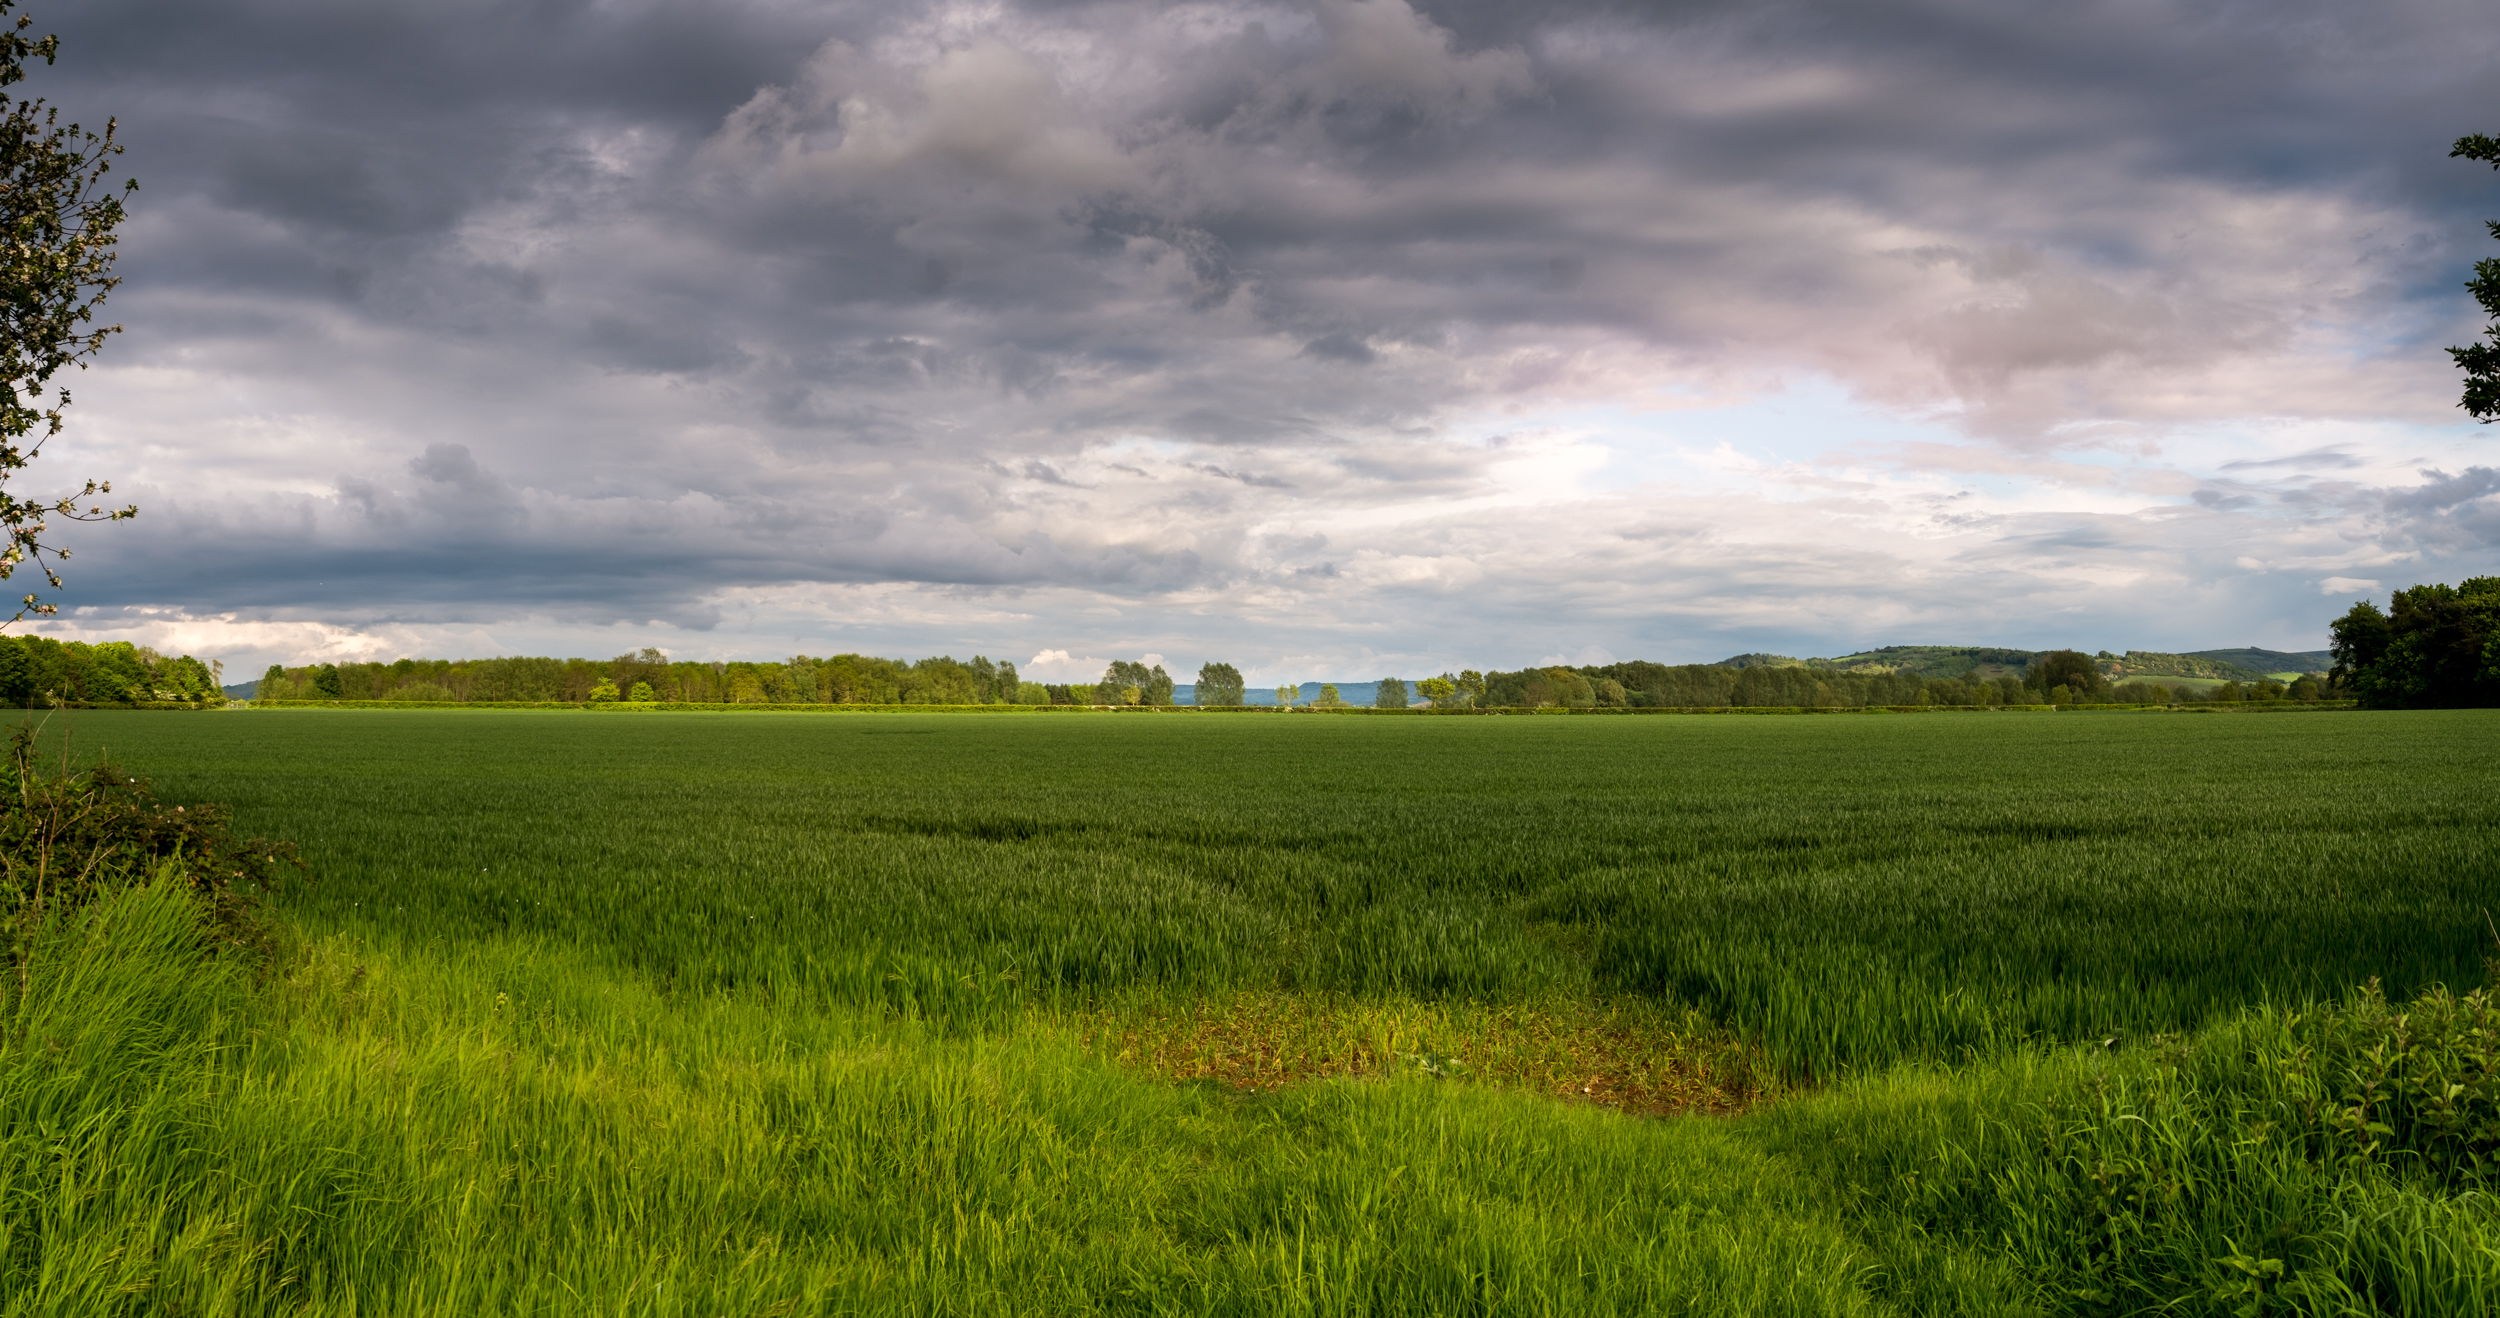 Today's image is a landscape from Gloucestershire, UK.